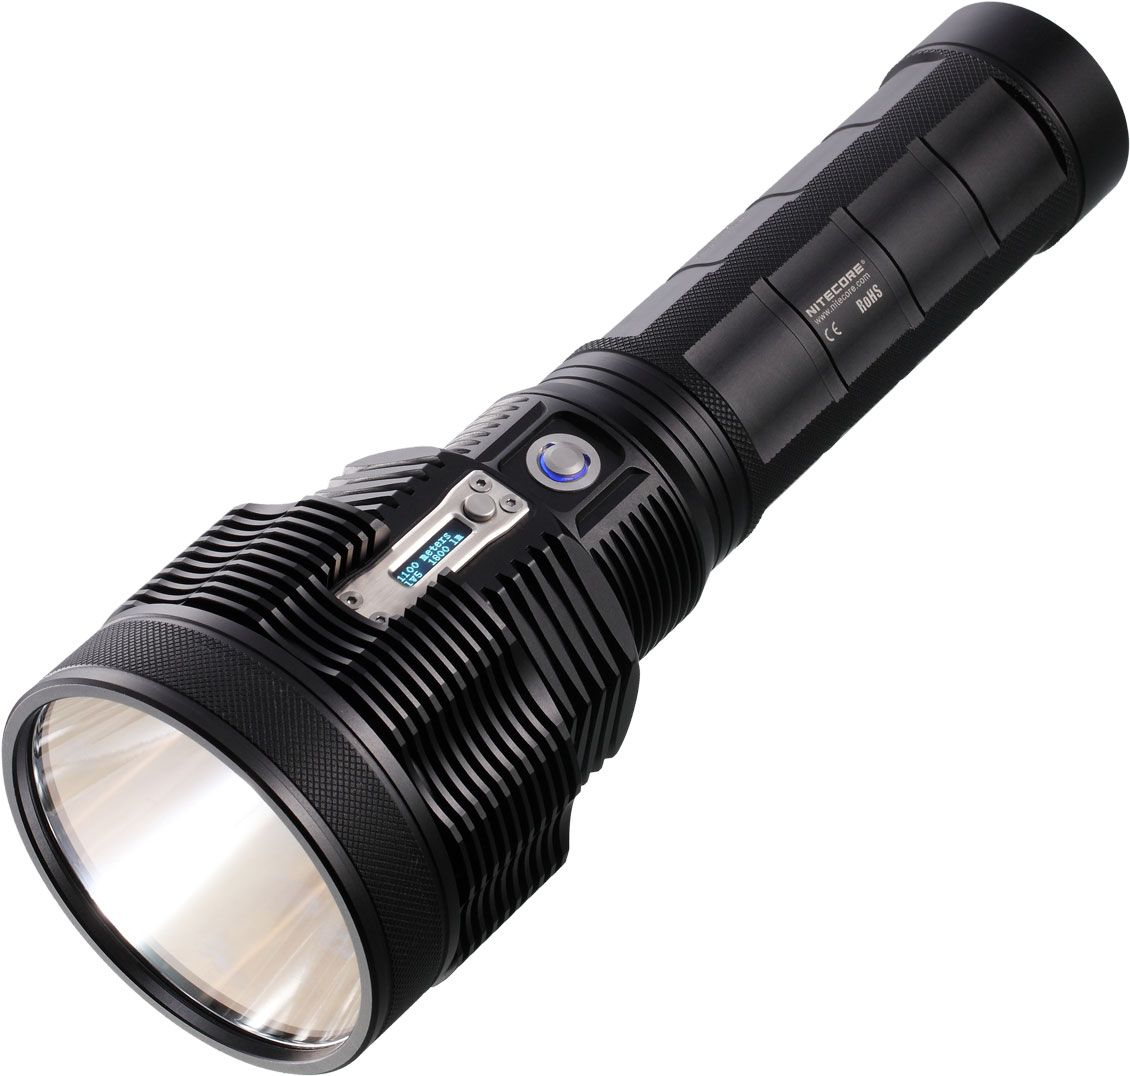 NITECORE TM36 Tiny Monster Series Rechargeable NBP52 LED Flashlight, 1800 Max Lumens